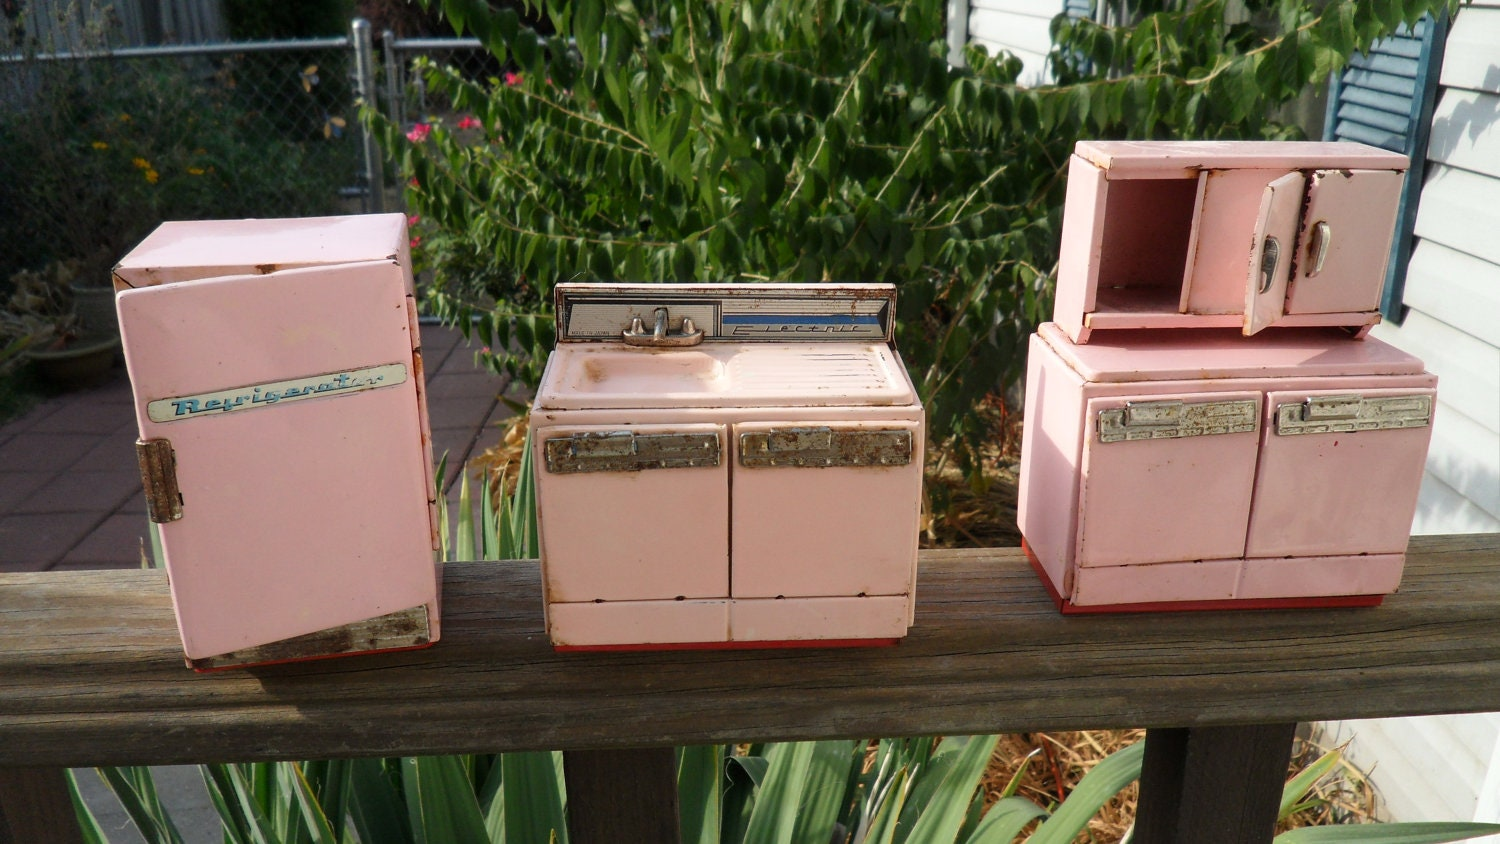 Kitchen Dollhouse Furniture Vintage Metal Dollhouse Appliances Pink Metal Dollhouse